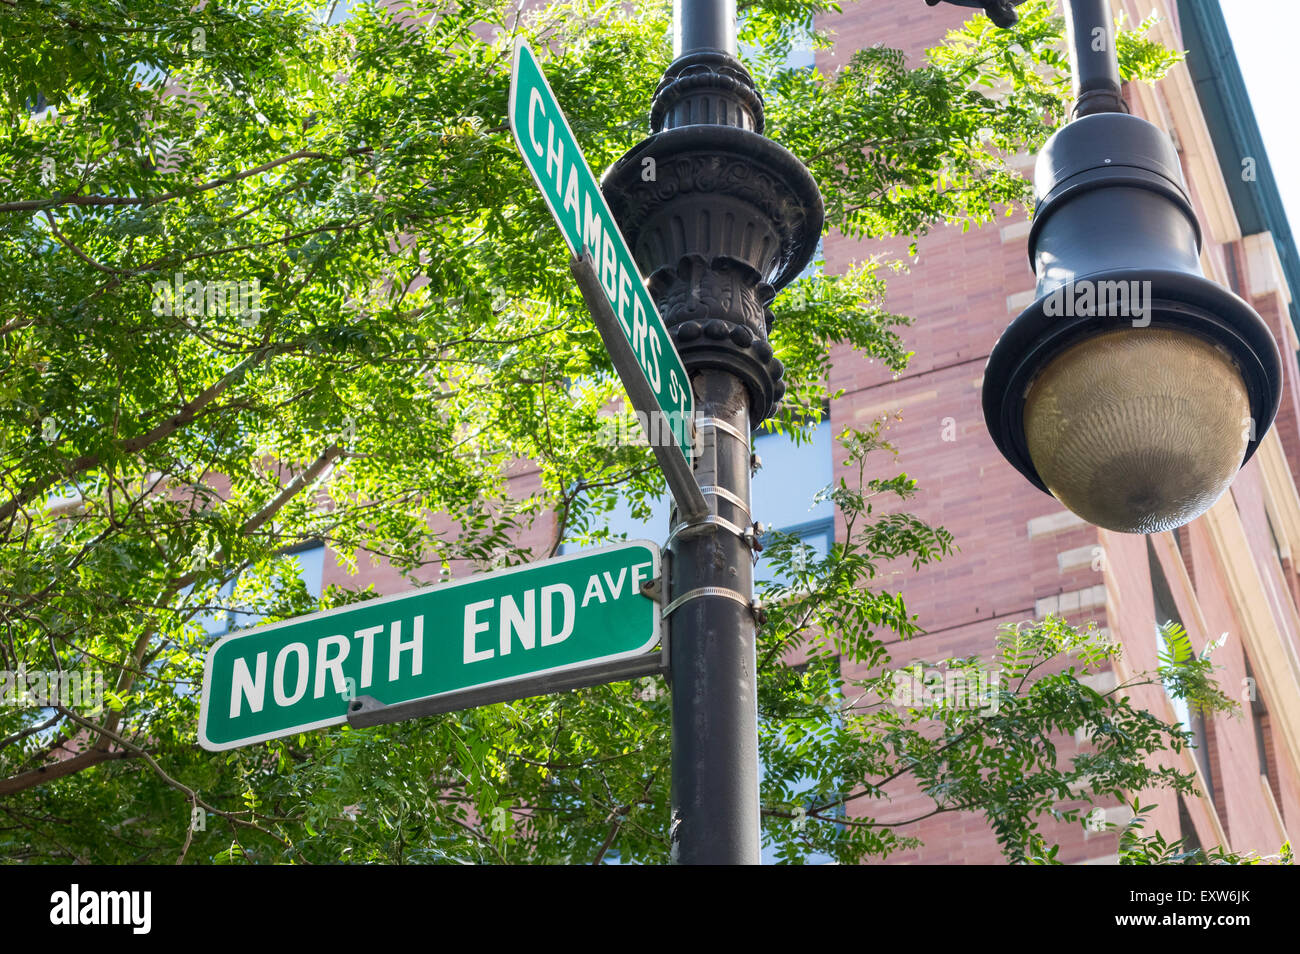 New York City street signs for North End Avenue and Chambers Street in Battery City Park in Lower Manhattan - Stock Image